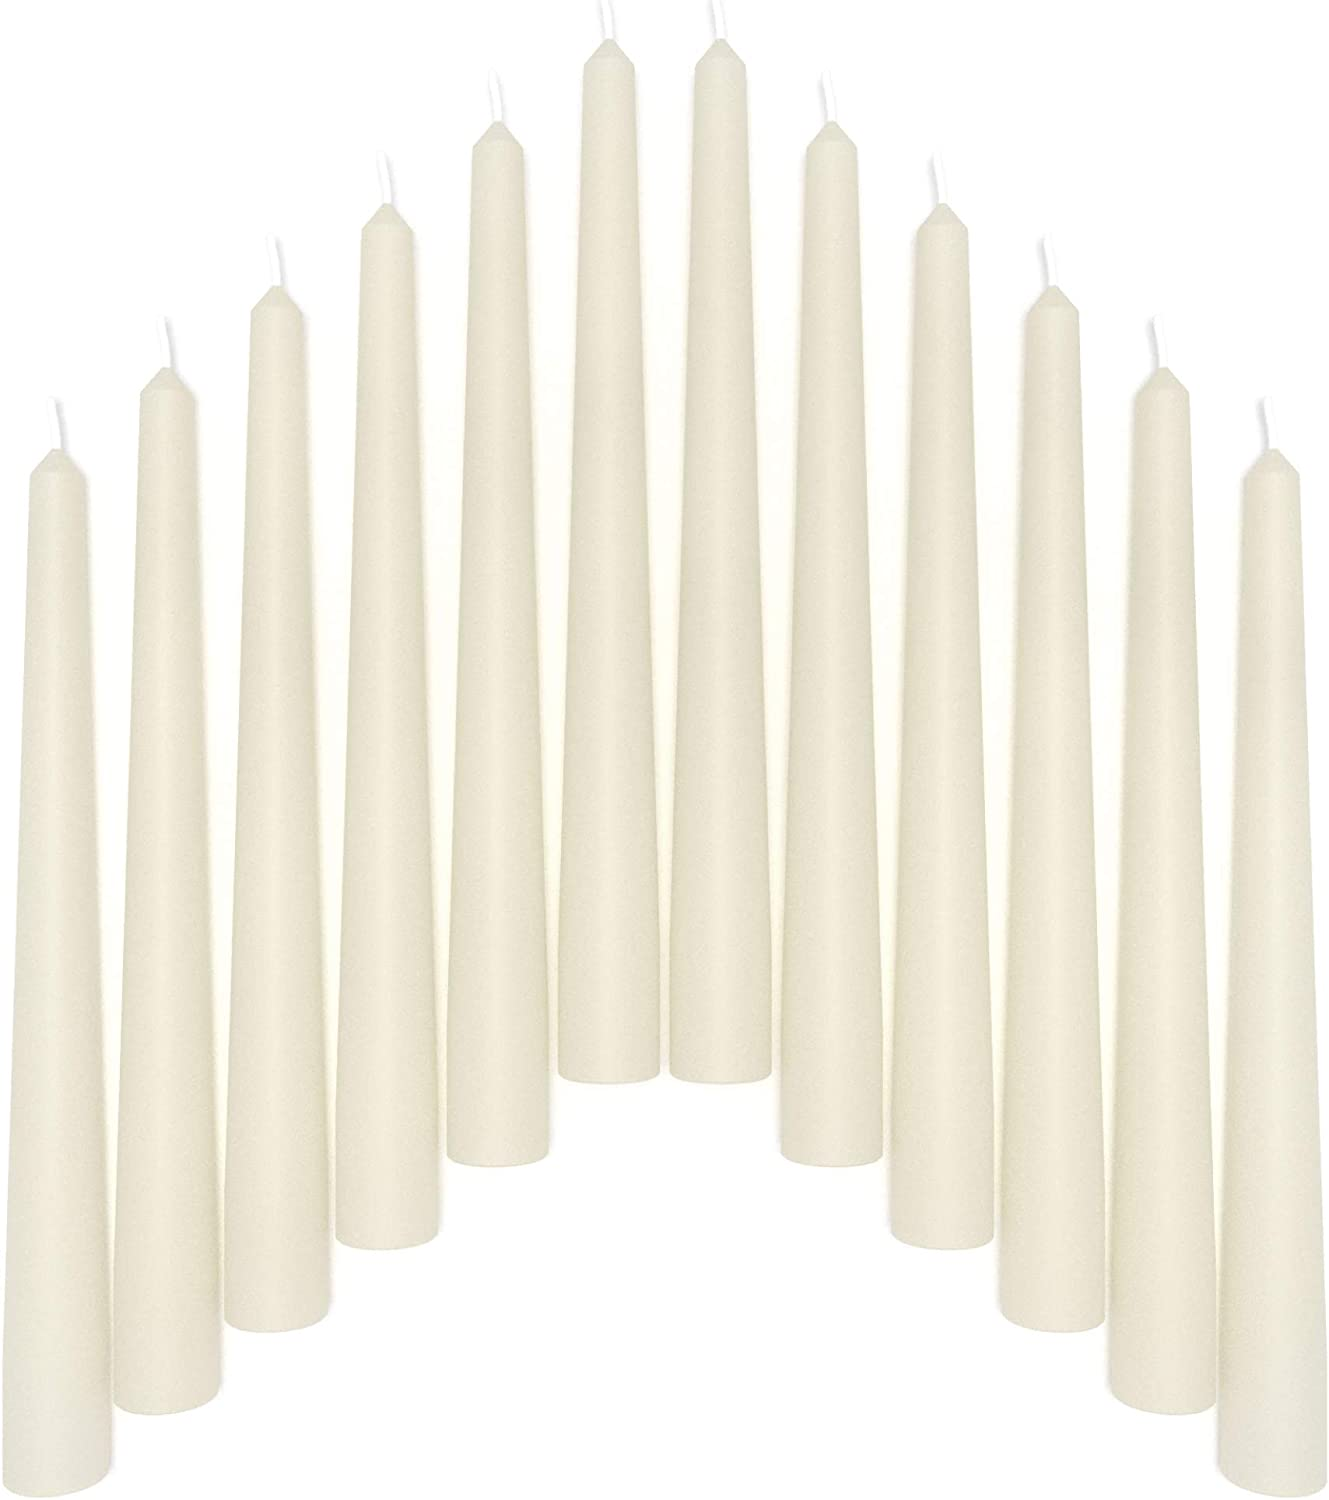 Sonedly 8 inch Taper Candle 12 Pack - Unscented Hand-Dipped Tapered Candles Long Burning Perfect for Home Interior - Dripless and Smokeless Tapered Candles for Home - 6-Hour Burning Ivory Candles